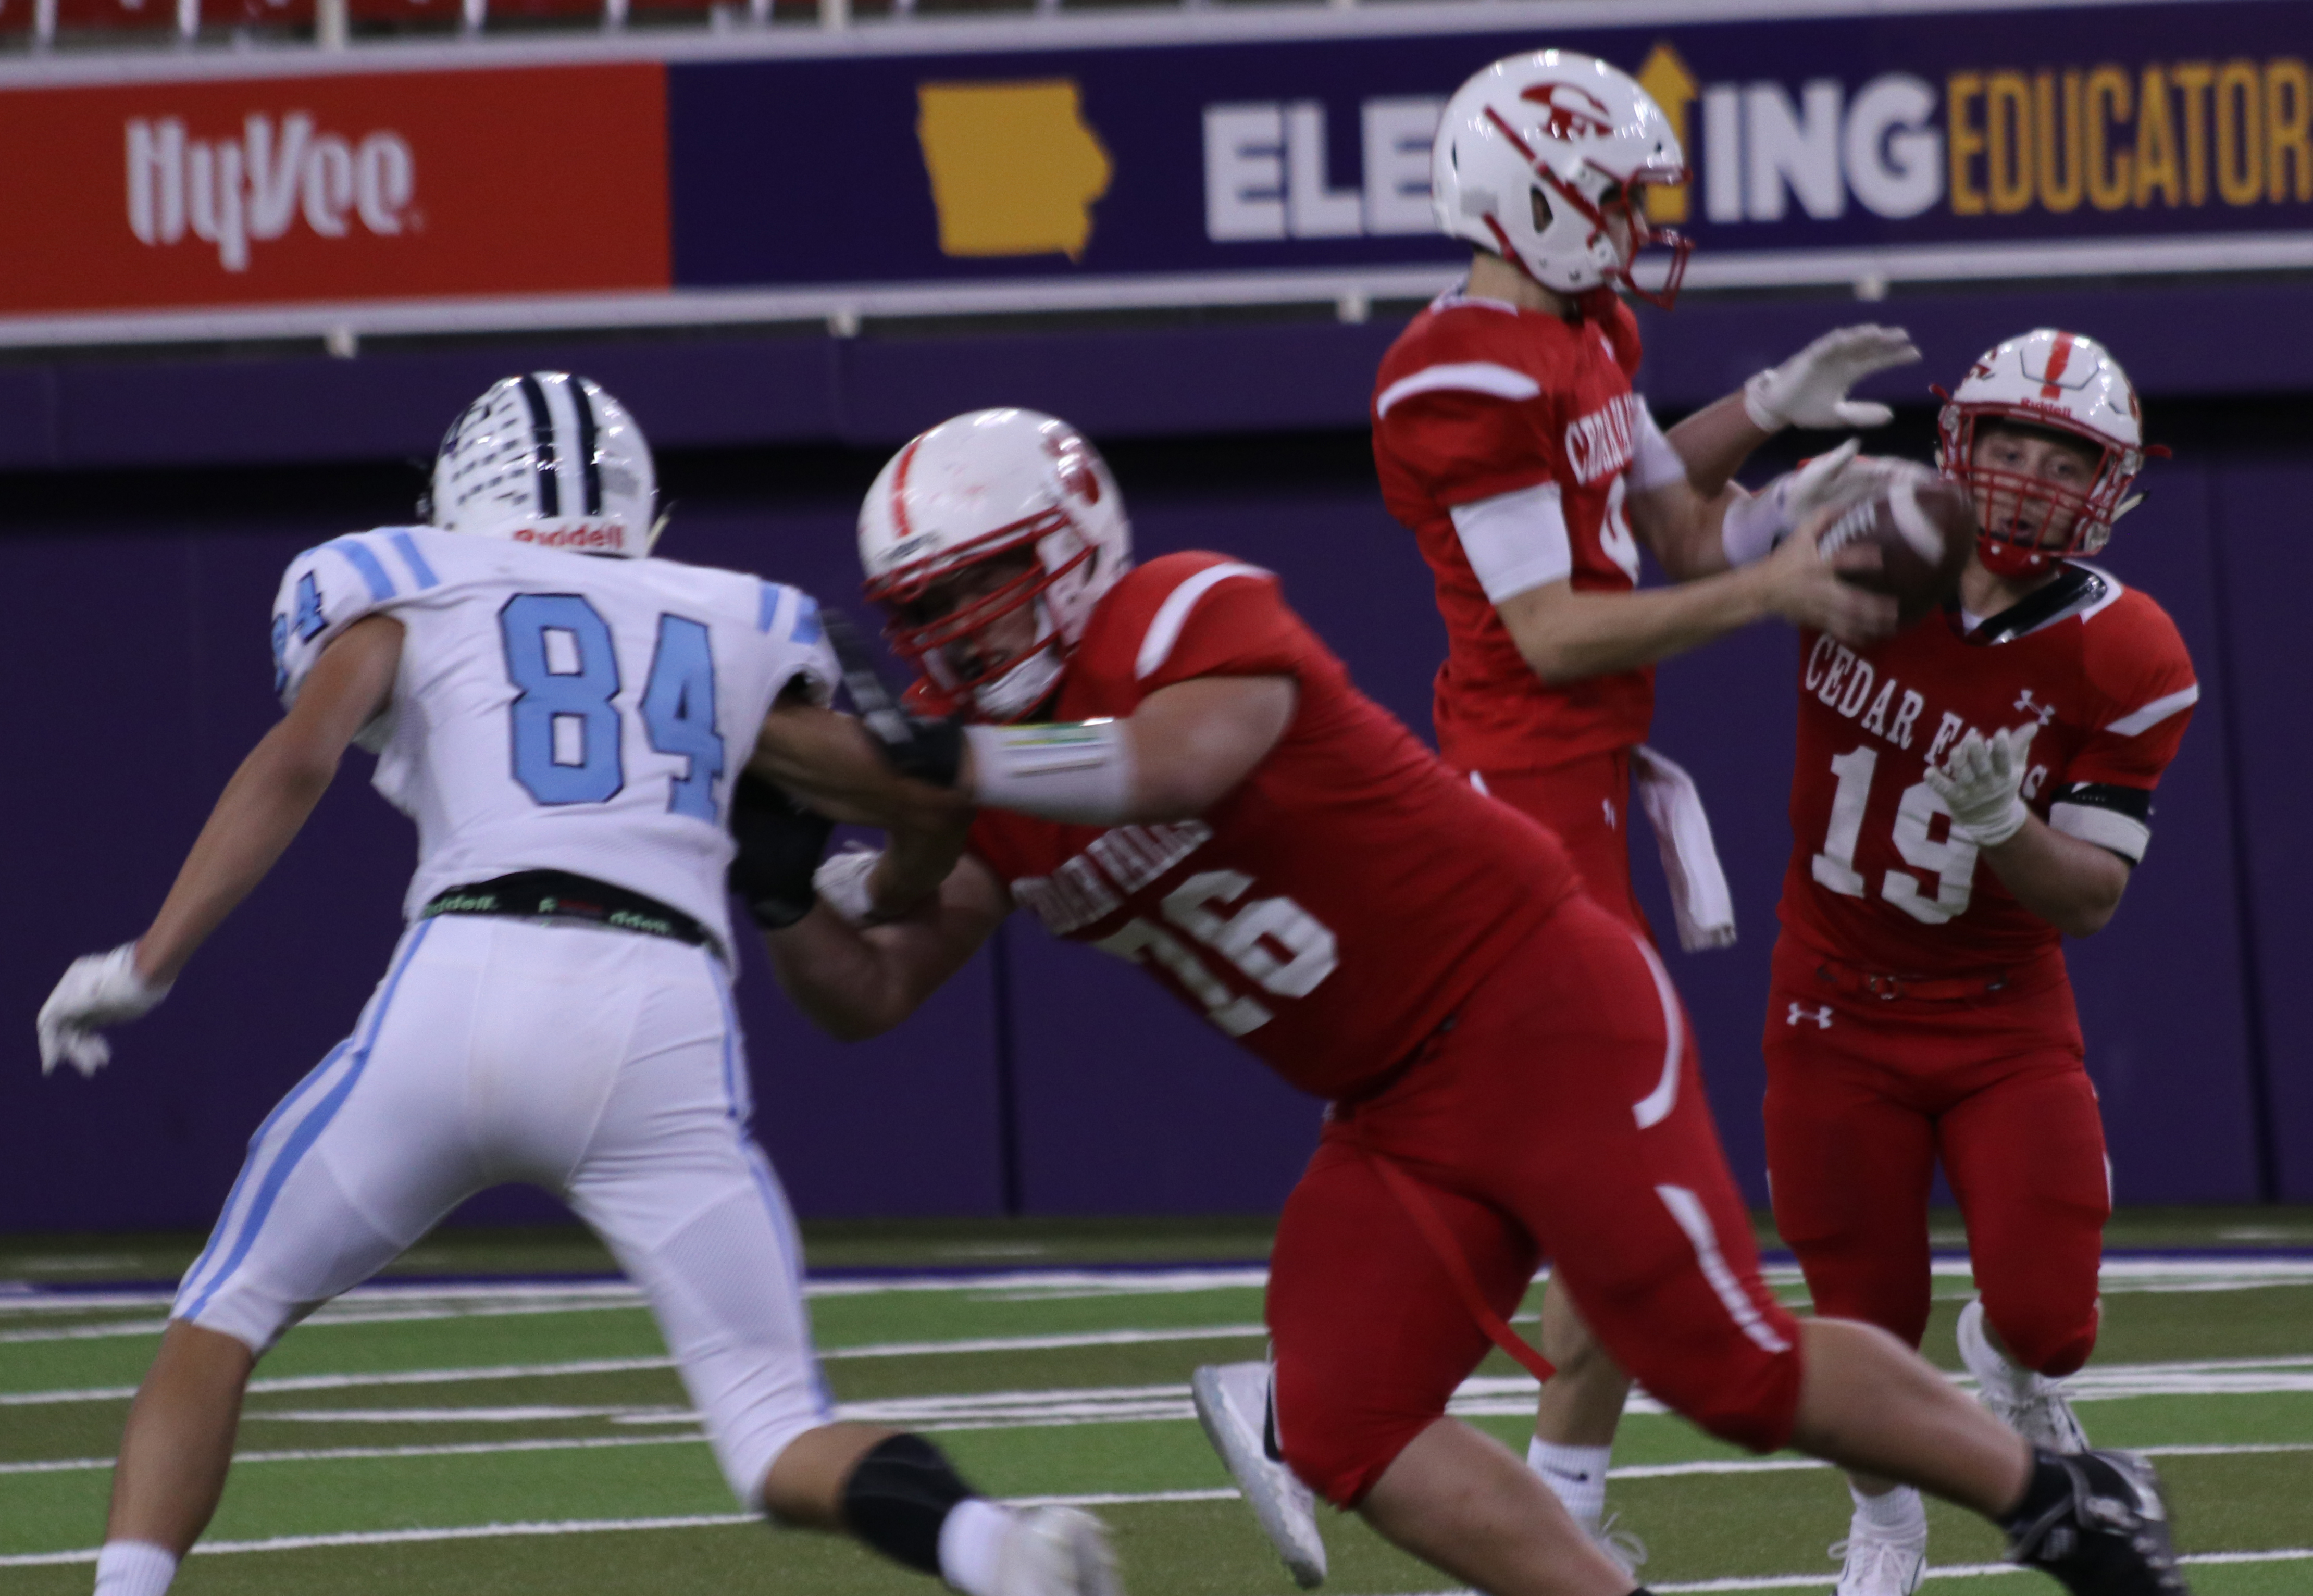 The football team beat the J-Hawks at the homecoming game at the UNI Dome on Friday, Sept. 28.